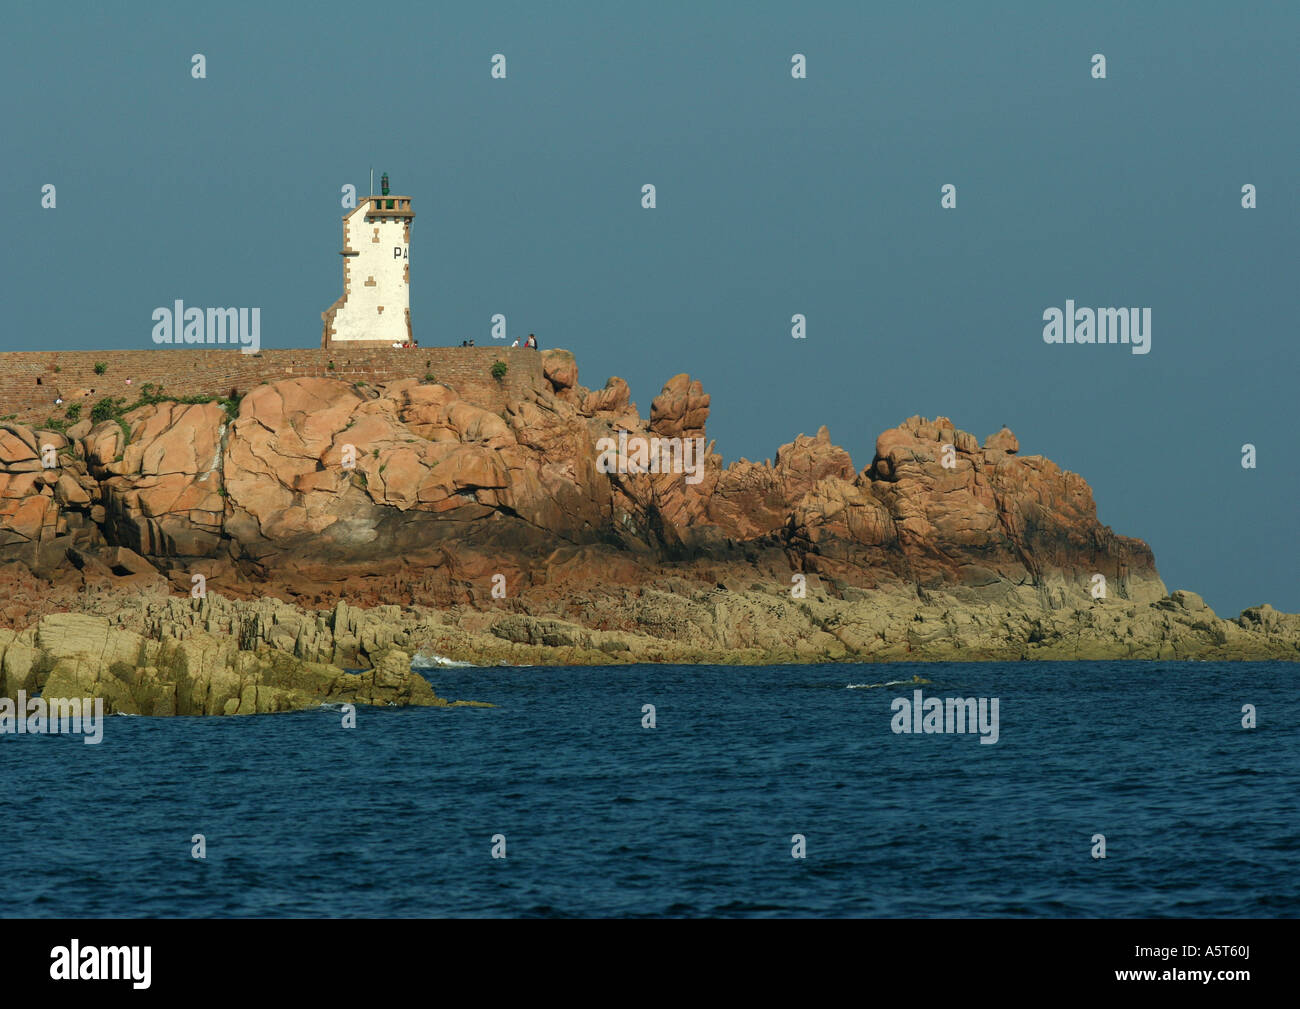 Ile de Brehat, Brittany, France, lighthouse and coastal rock formations - Stock Image